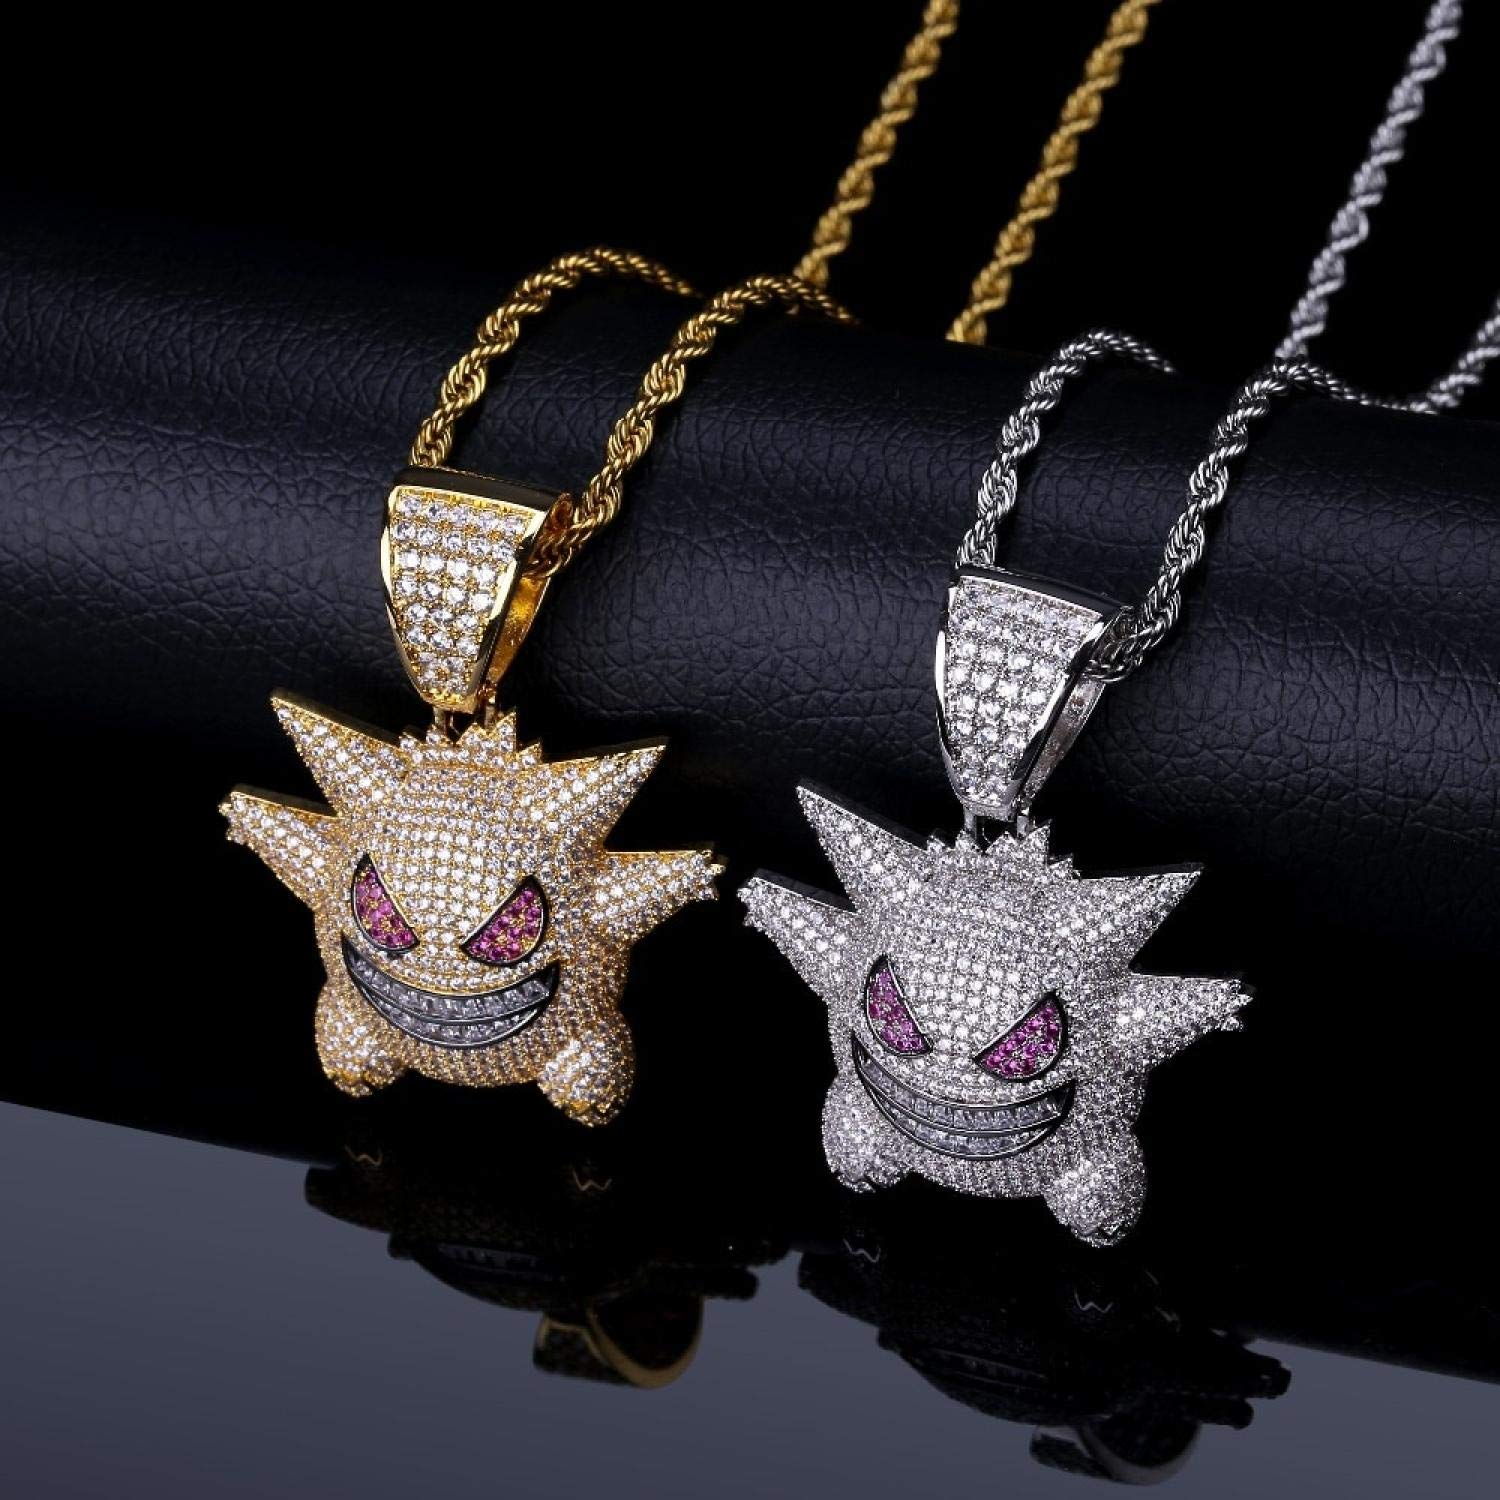 Michell Ivan Personalized Gengar Pendant Necklace Men with Tennis Chain Hip Hop//Punk Gold Silver Color Charms Chain Jewelry,Purple Chain